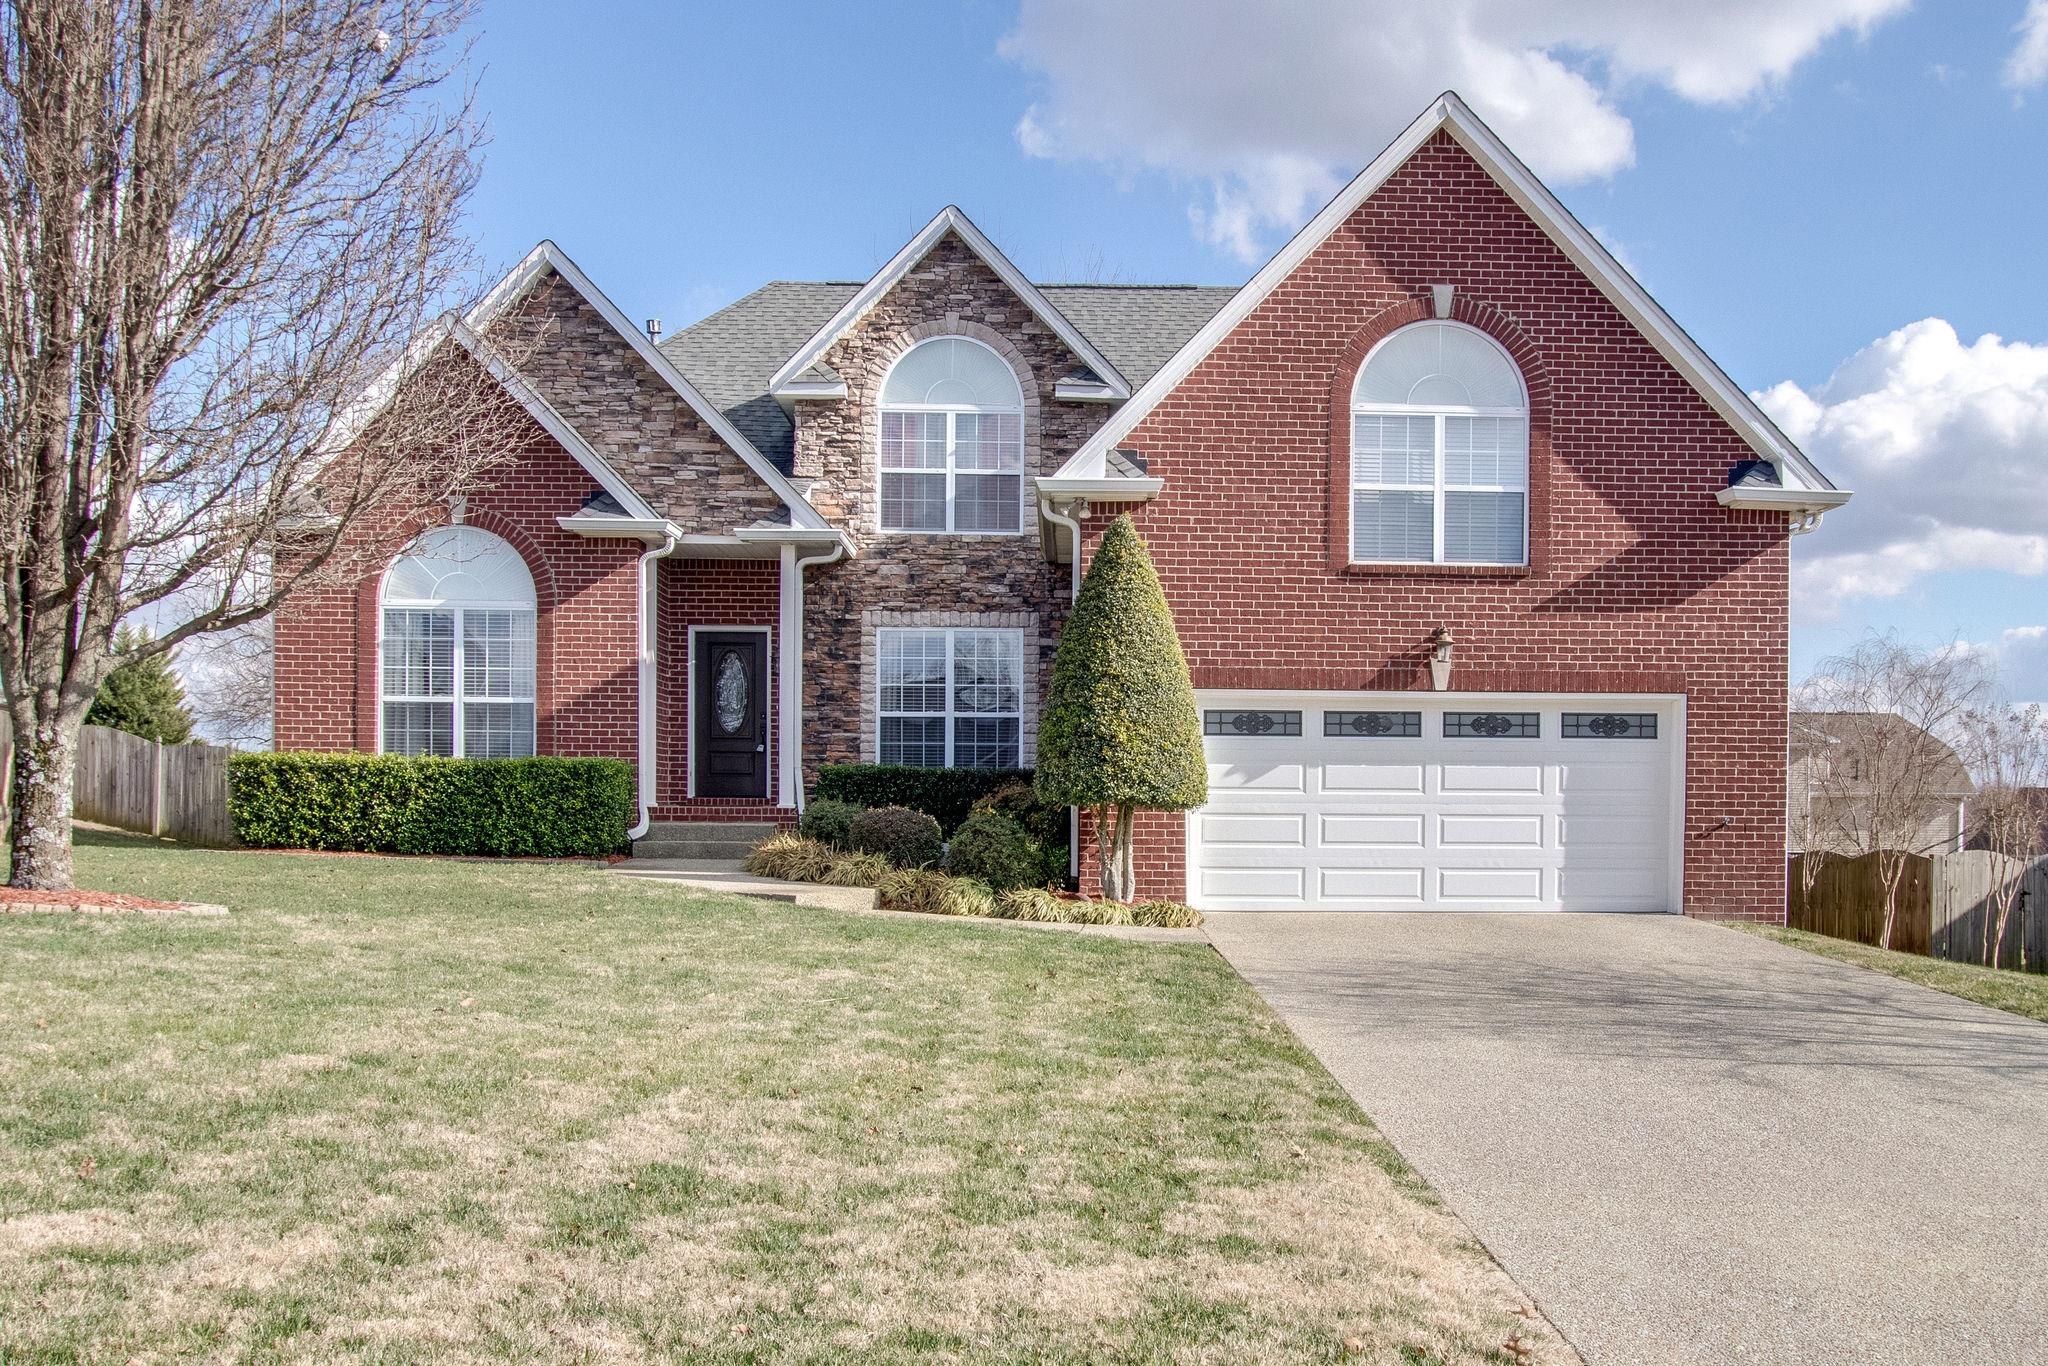 3345 Troy Rd, Lebanon in Wilson County County, TN 37087 Home for Sale